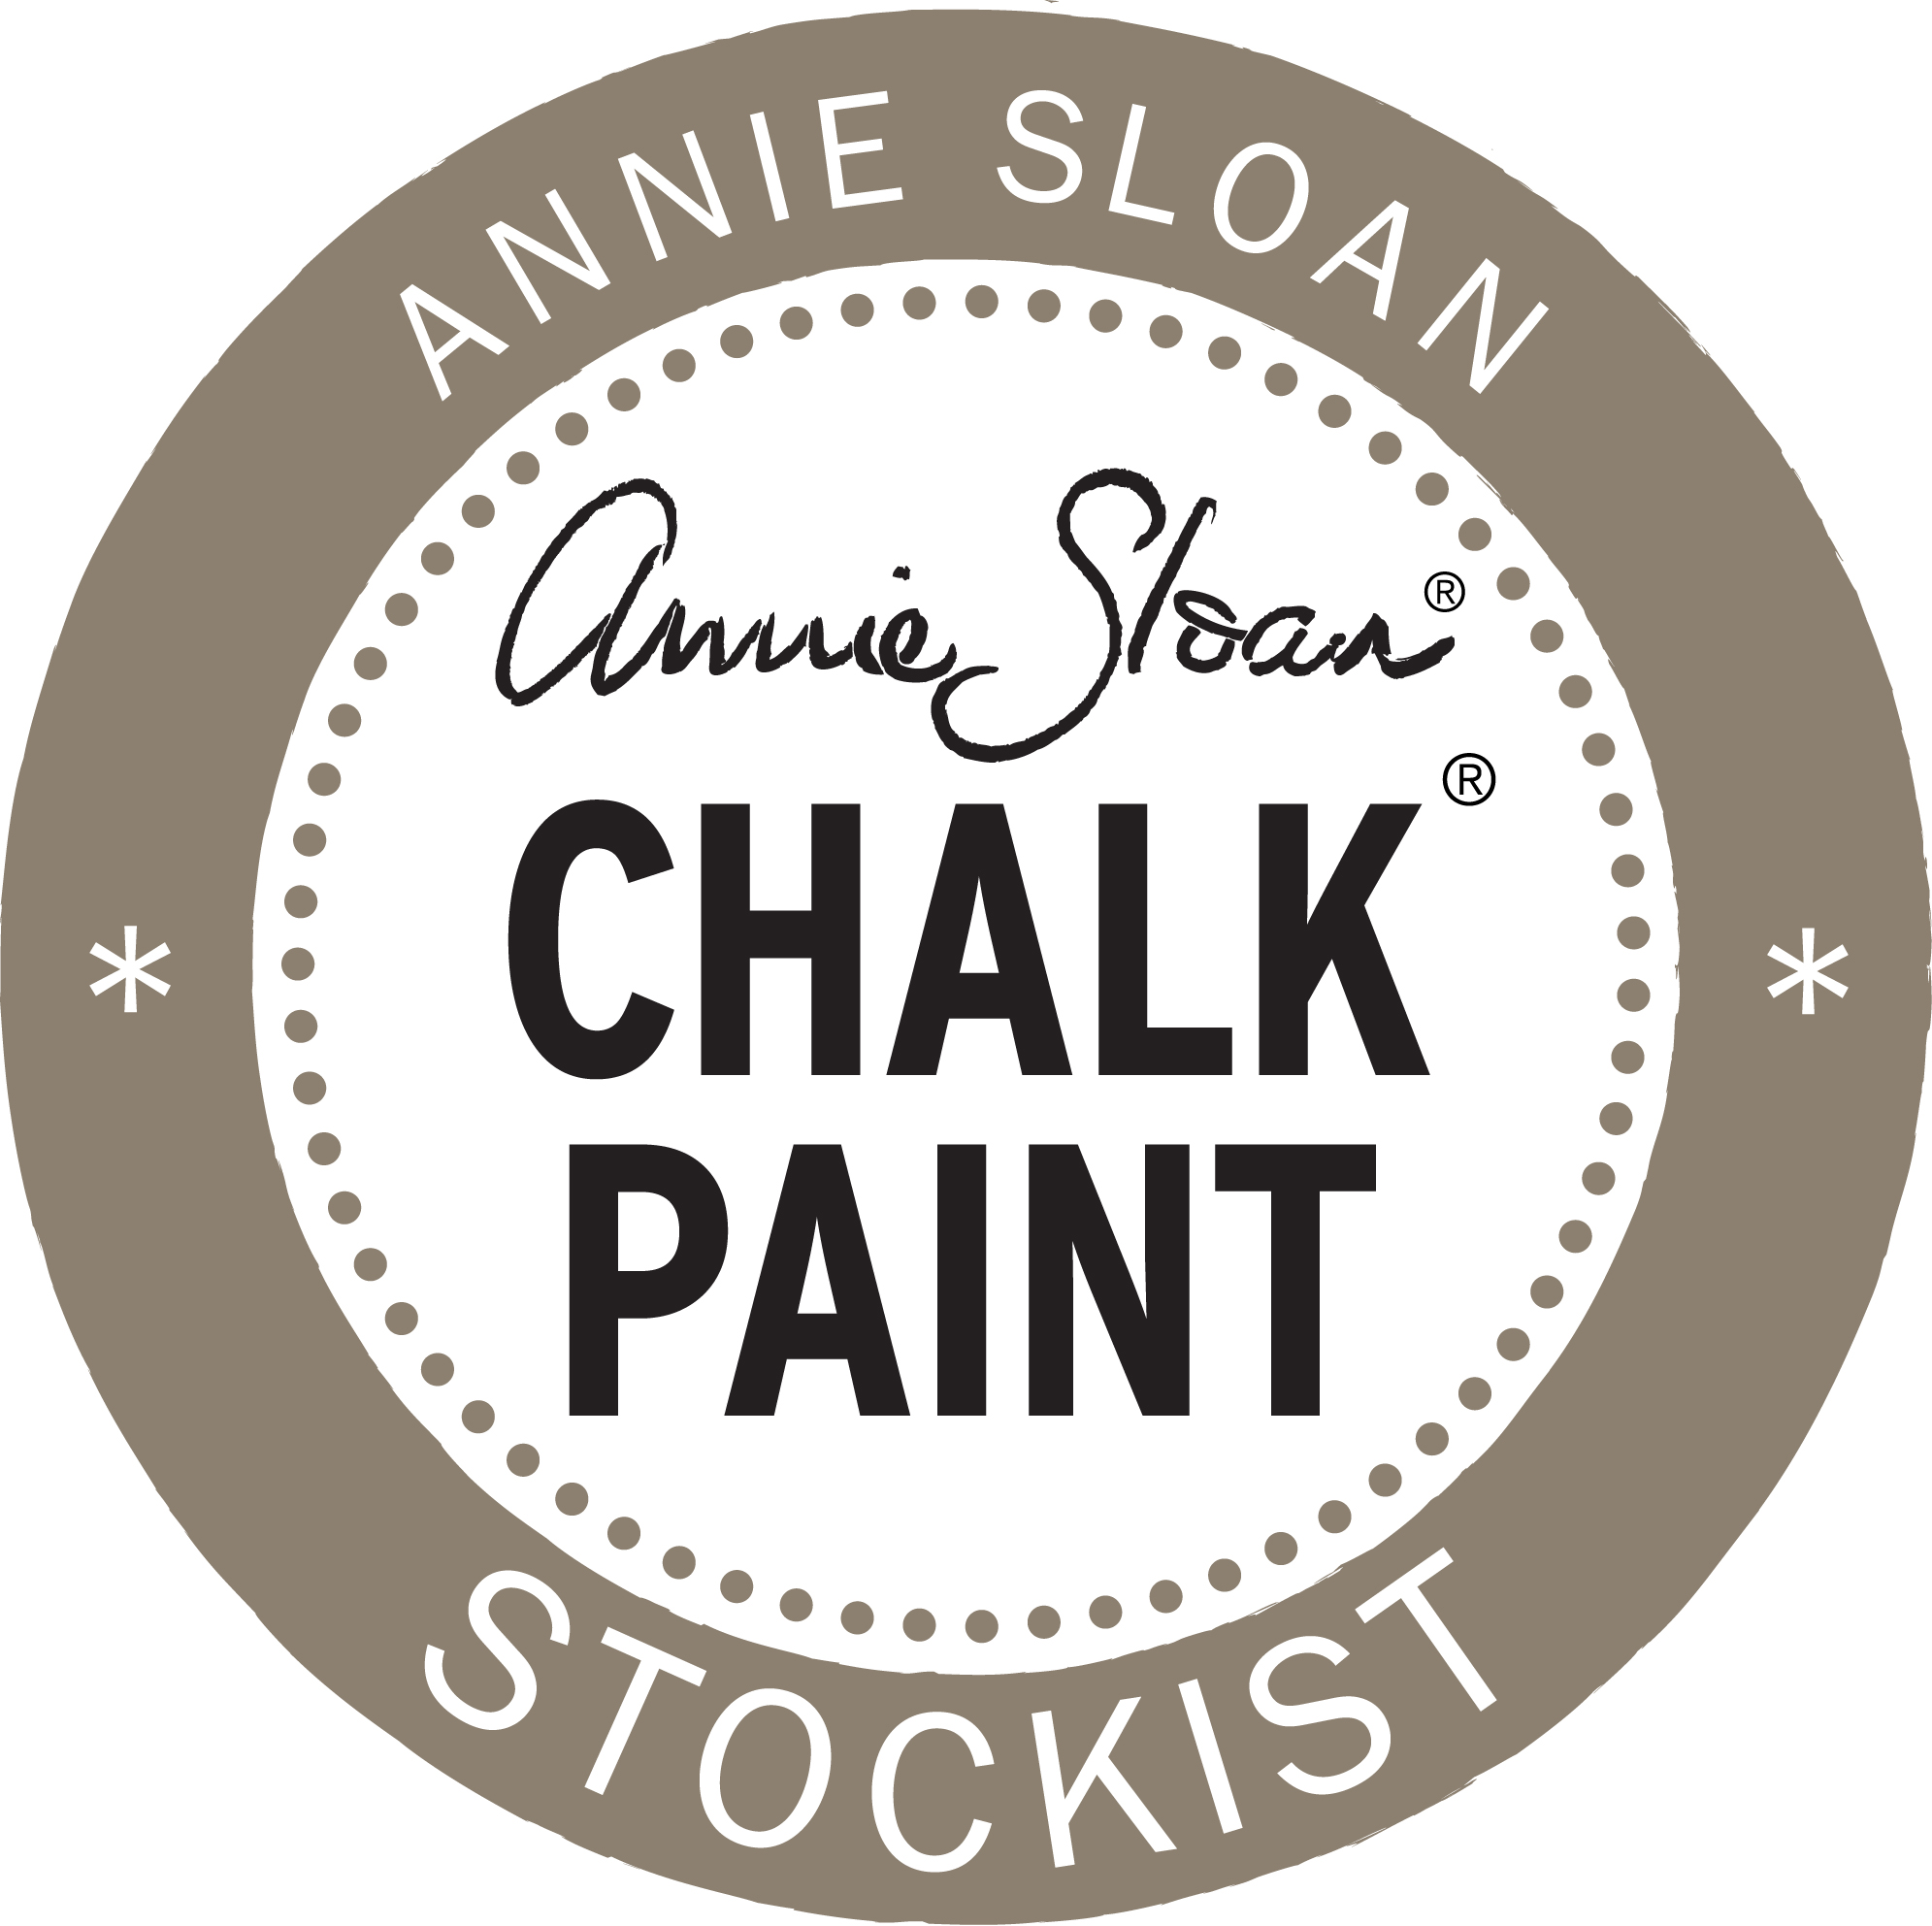 Annie Sloan - Stockist logos - Chalk Paint - French Grey.jpg